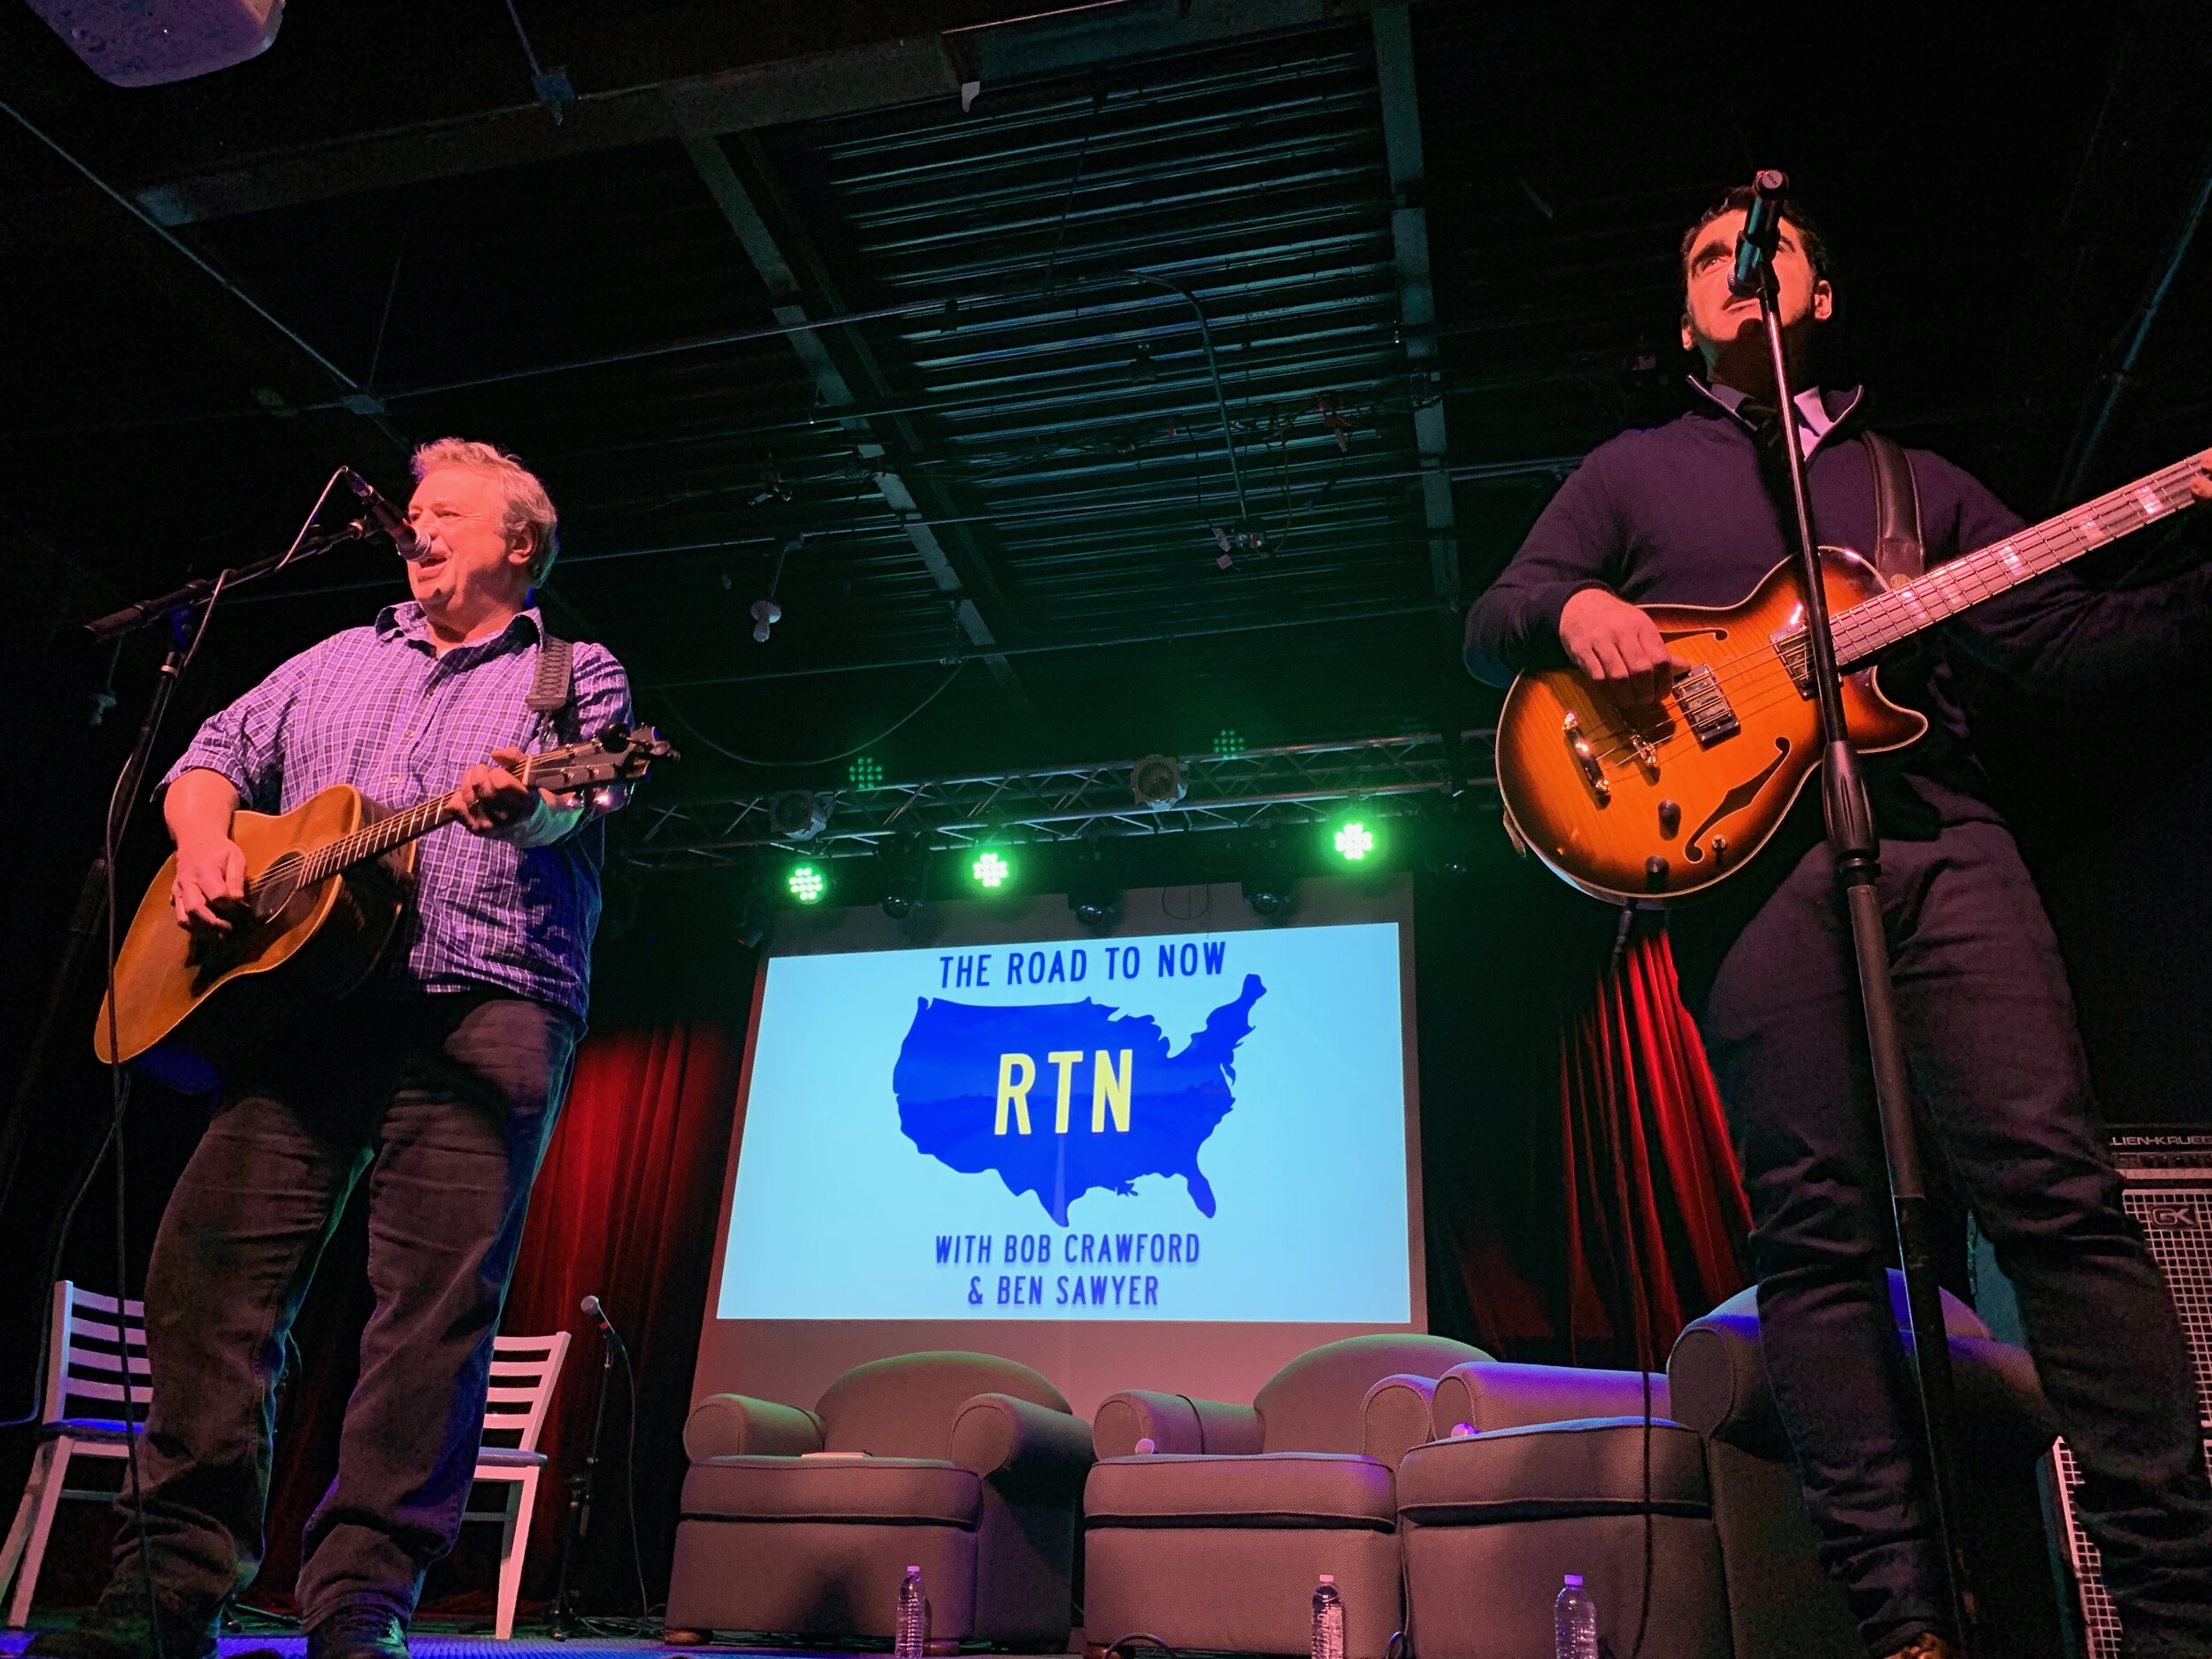 David Childers & Bob Crawford at RTN Live in Carrboro, NC. Picture by Melanie Crawford.